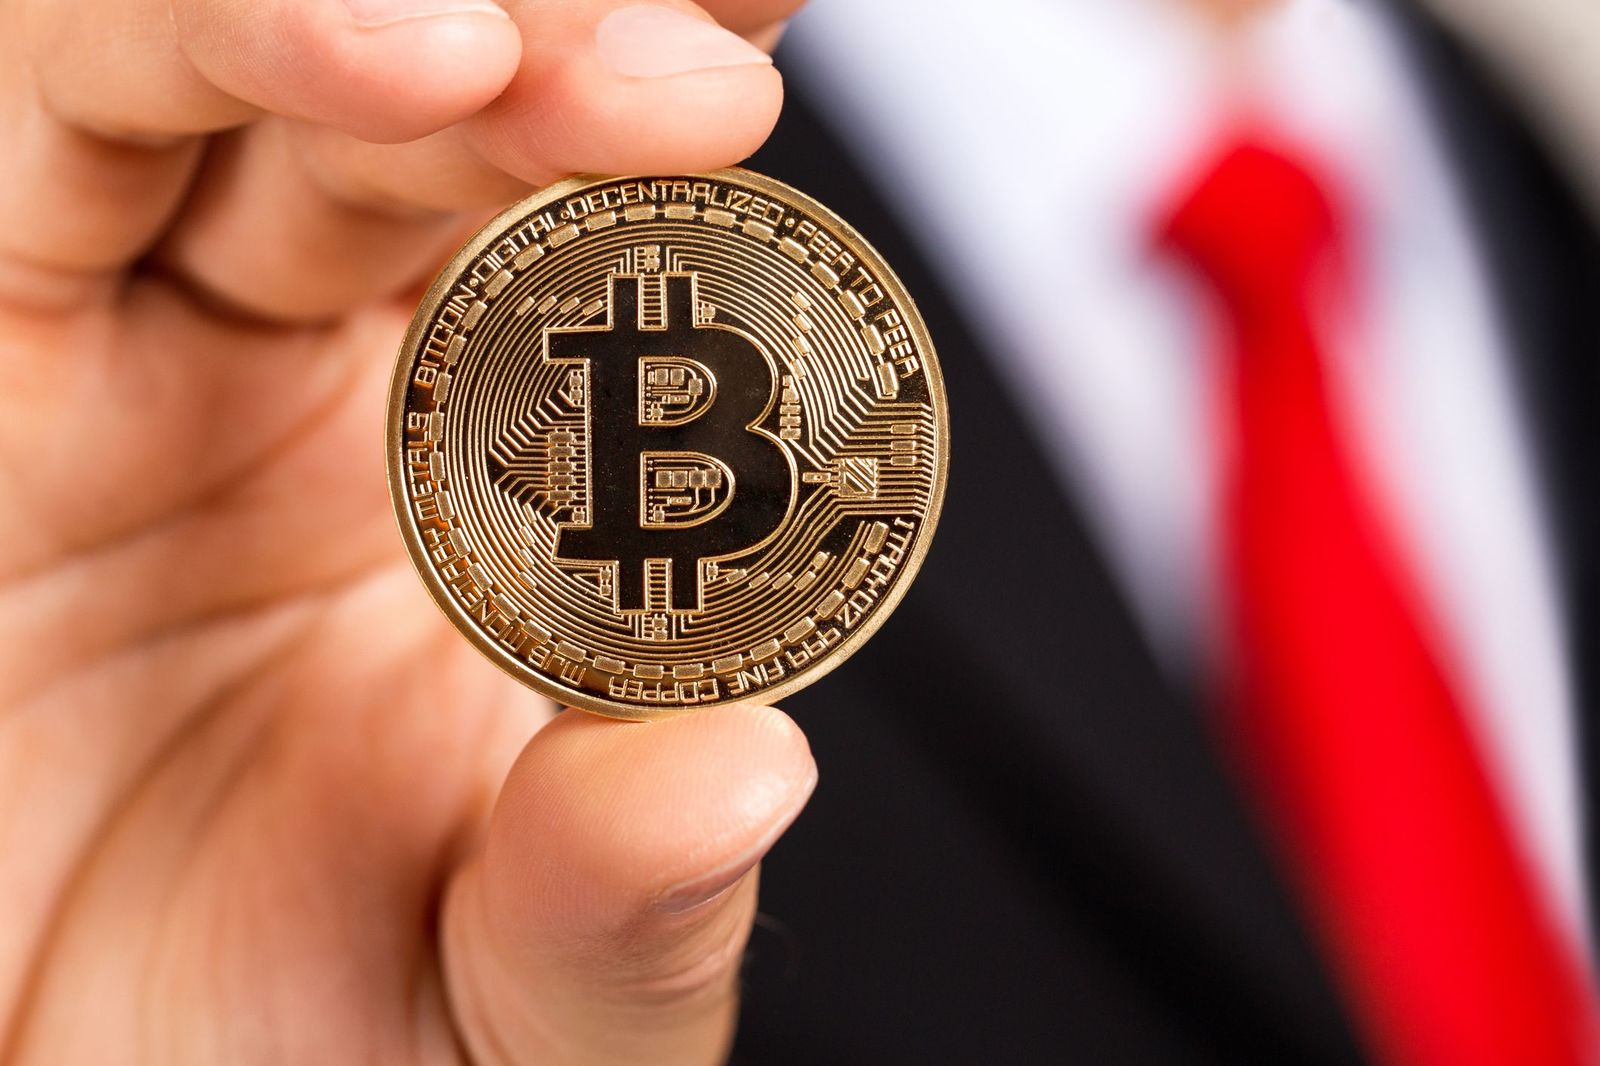 Silk Road Founder Ross Ulbricht: 'The Sky is the Limit' for Bitcoin